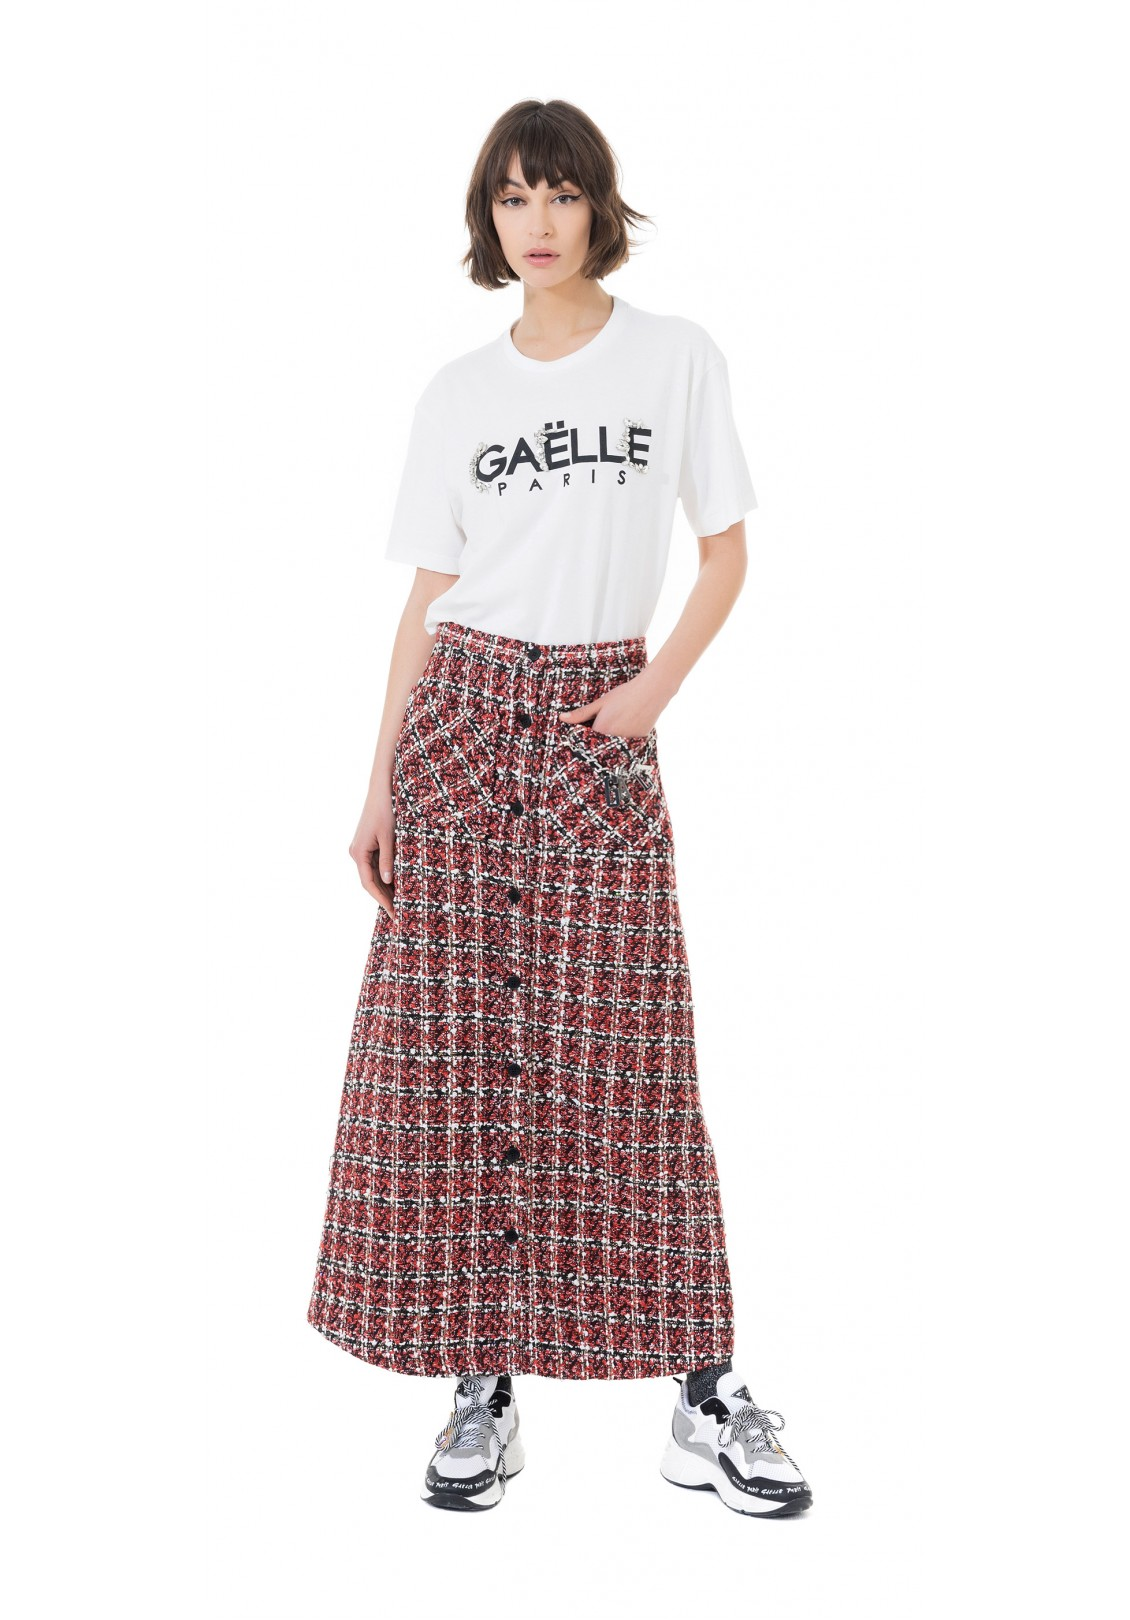 SKIRT - GBD5411 - GAELLE PARIS